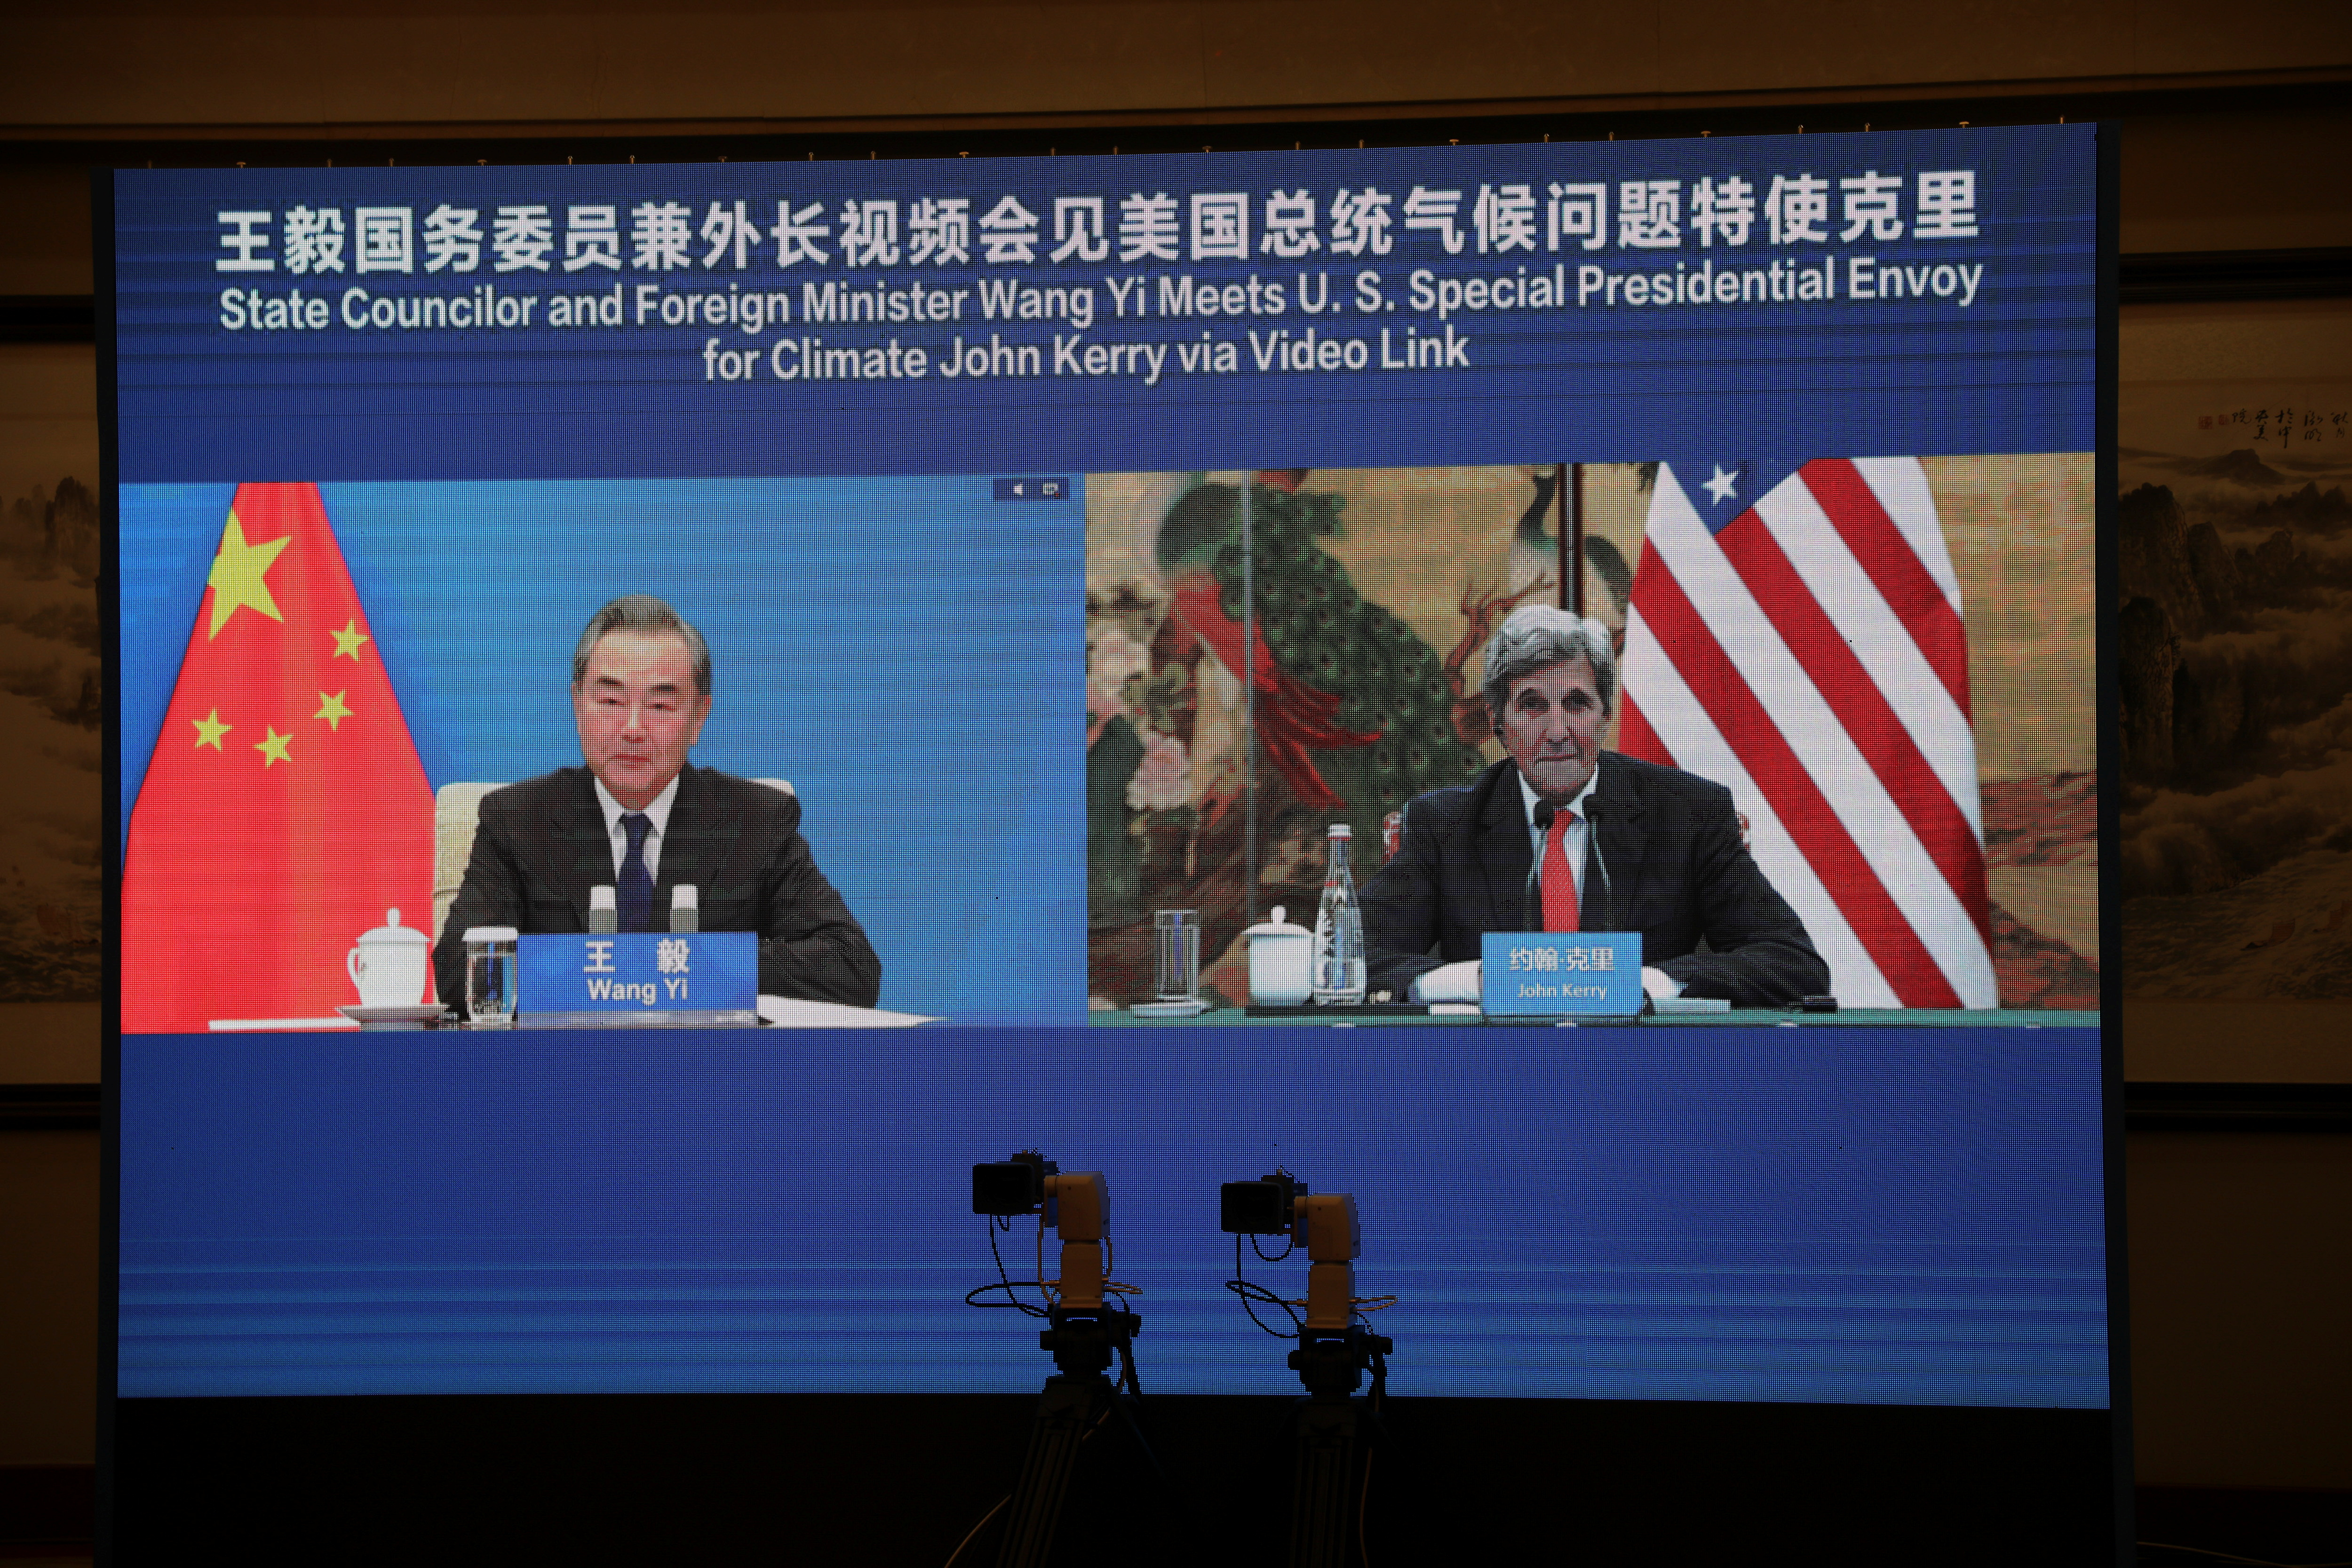 U.S. Special Presidential Envoy for Climate John Kerry is seen on a screen with Chinese State Councillor and Foreign Minister Wang Yi during a meeting via video link as Kerry visits Tianjin, China September 1, 2021. U.S. Department of State/Handout via REUTERS